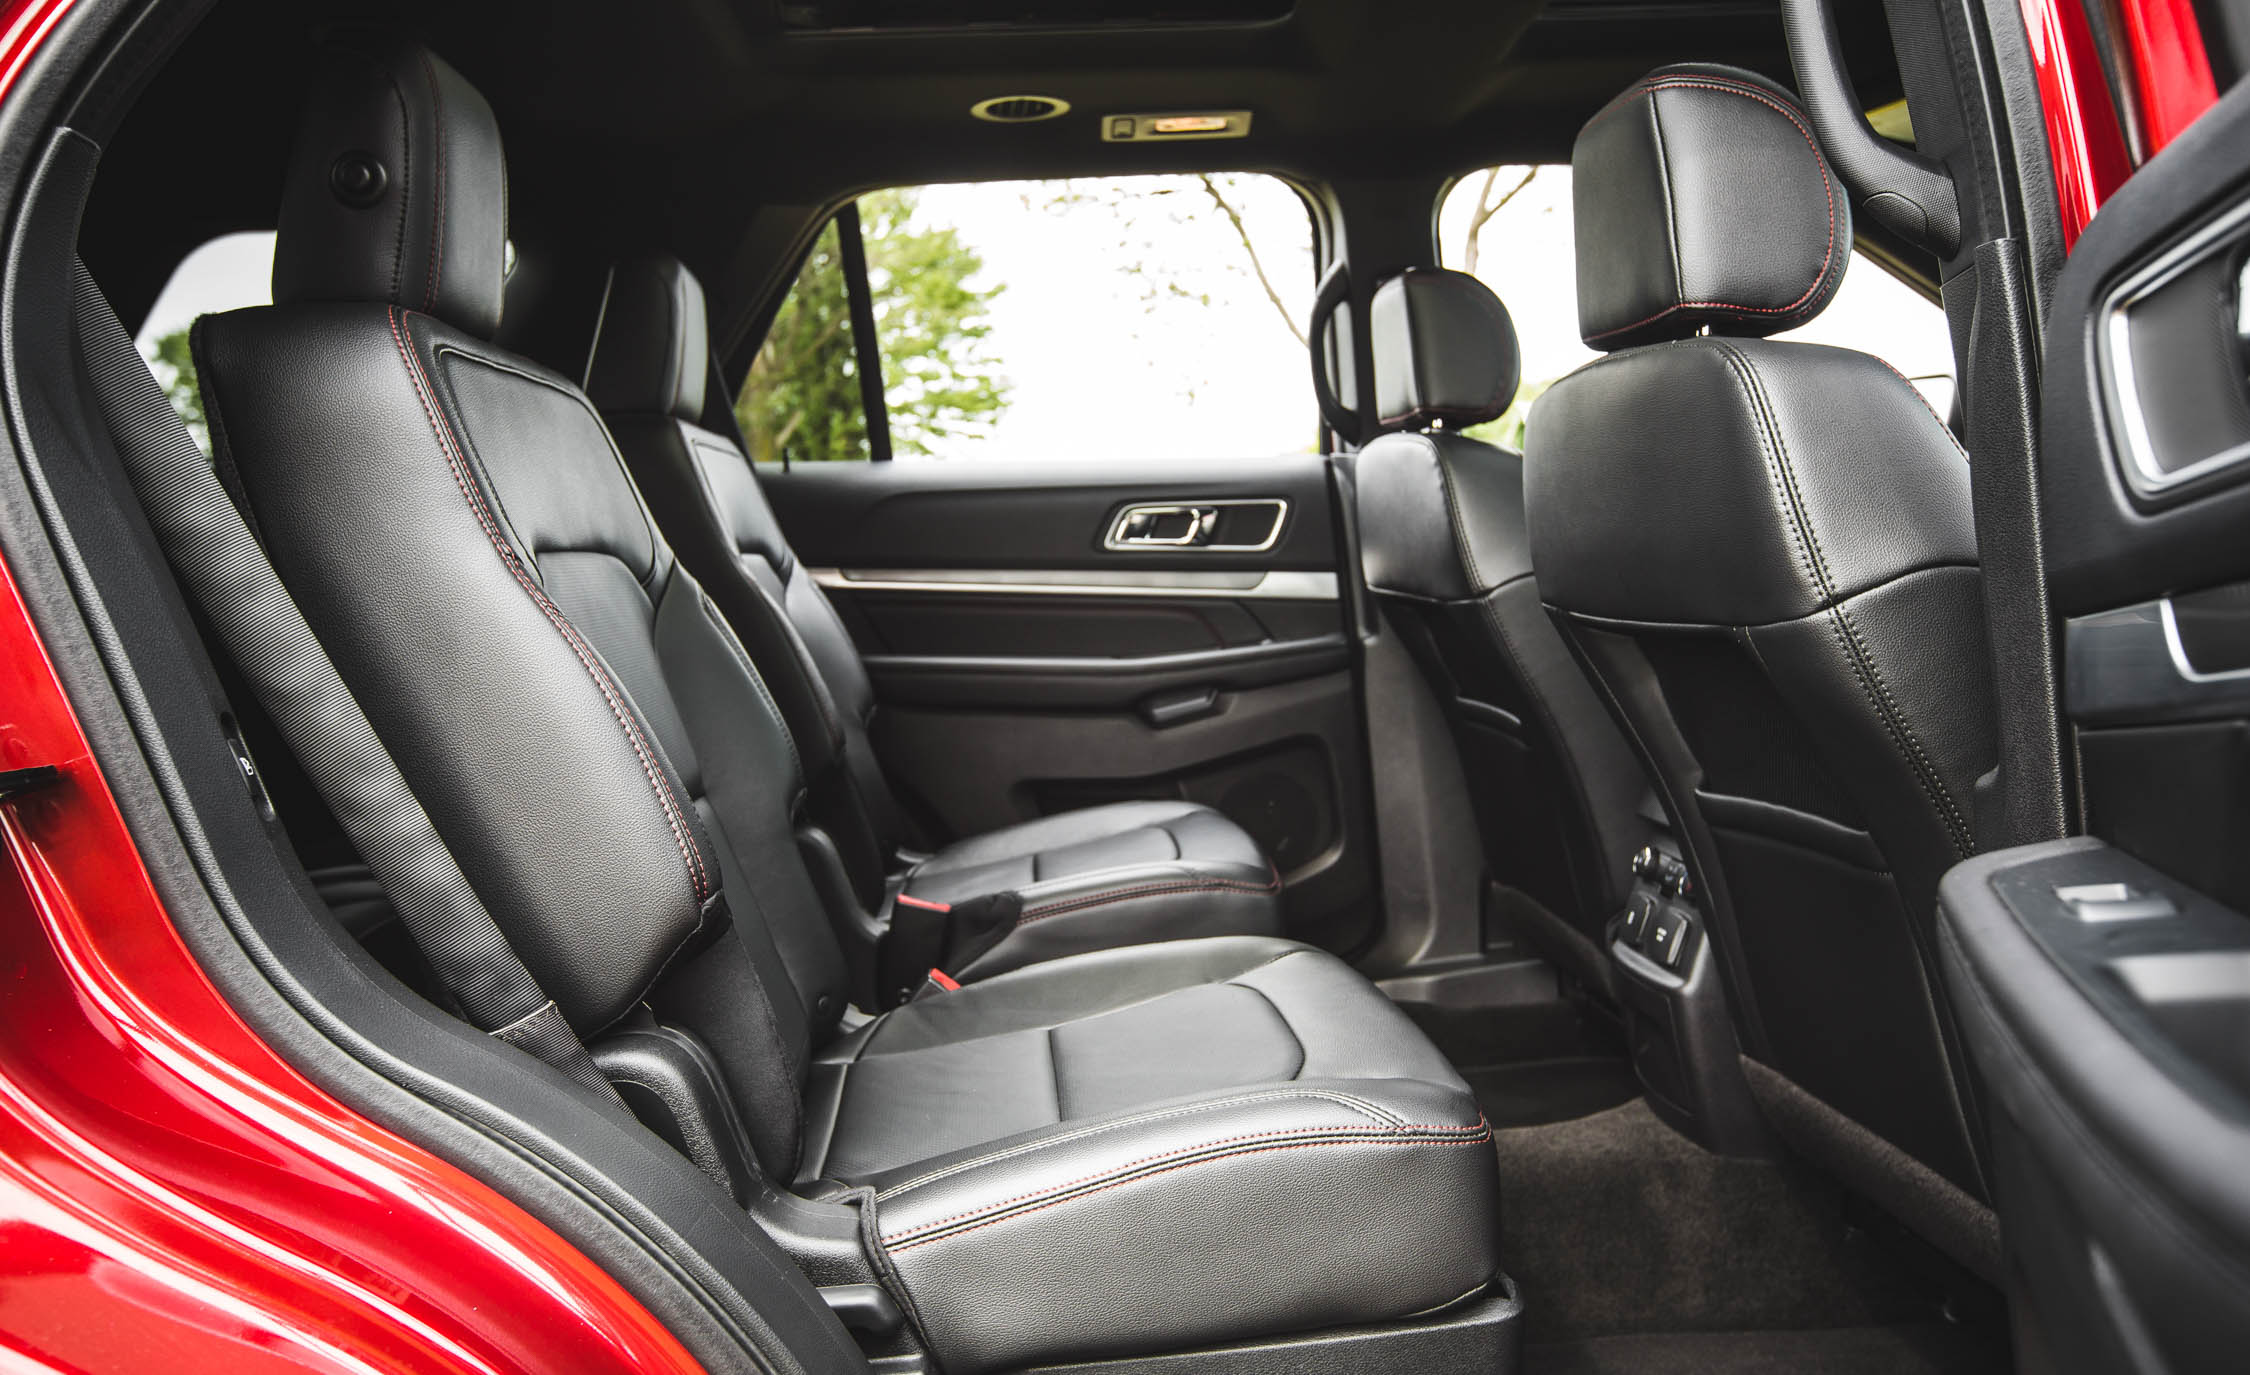 ford explorer 2016 interior 2018 ford explorer interior 2018 car reviews 2016 ford explorer. Black Bedroom Furniture Sets. Home Design Ideas